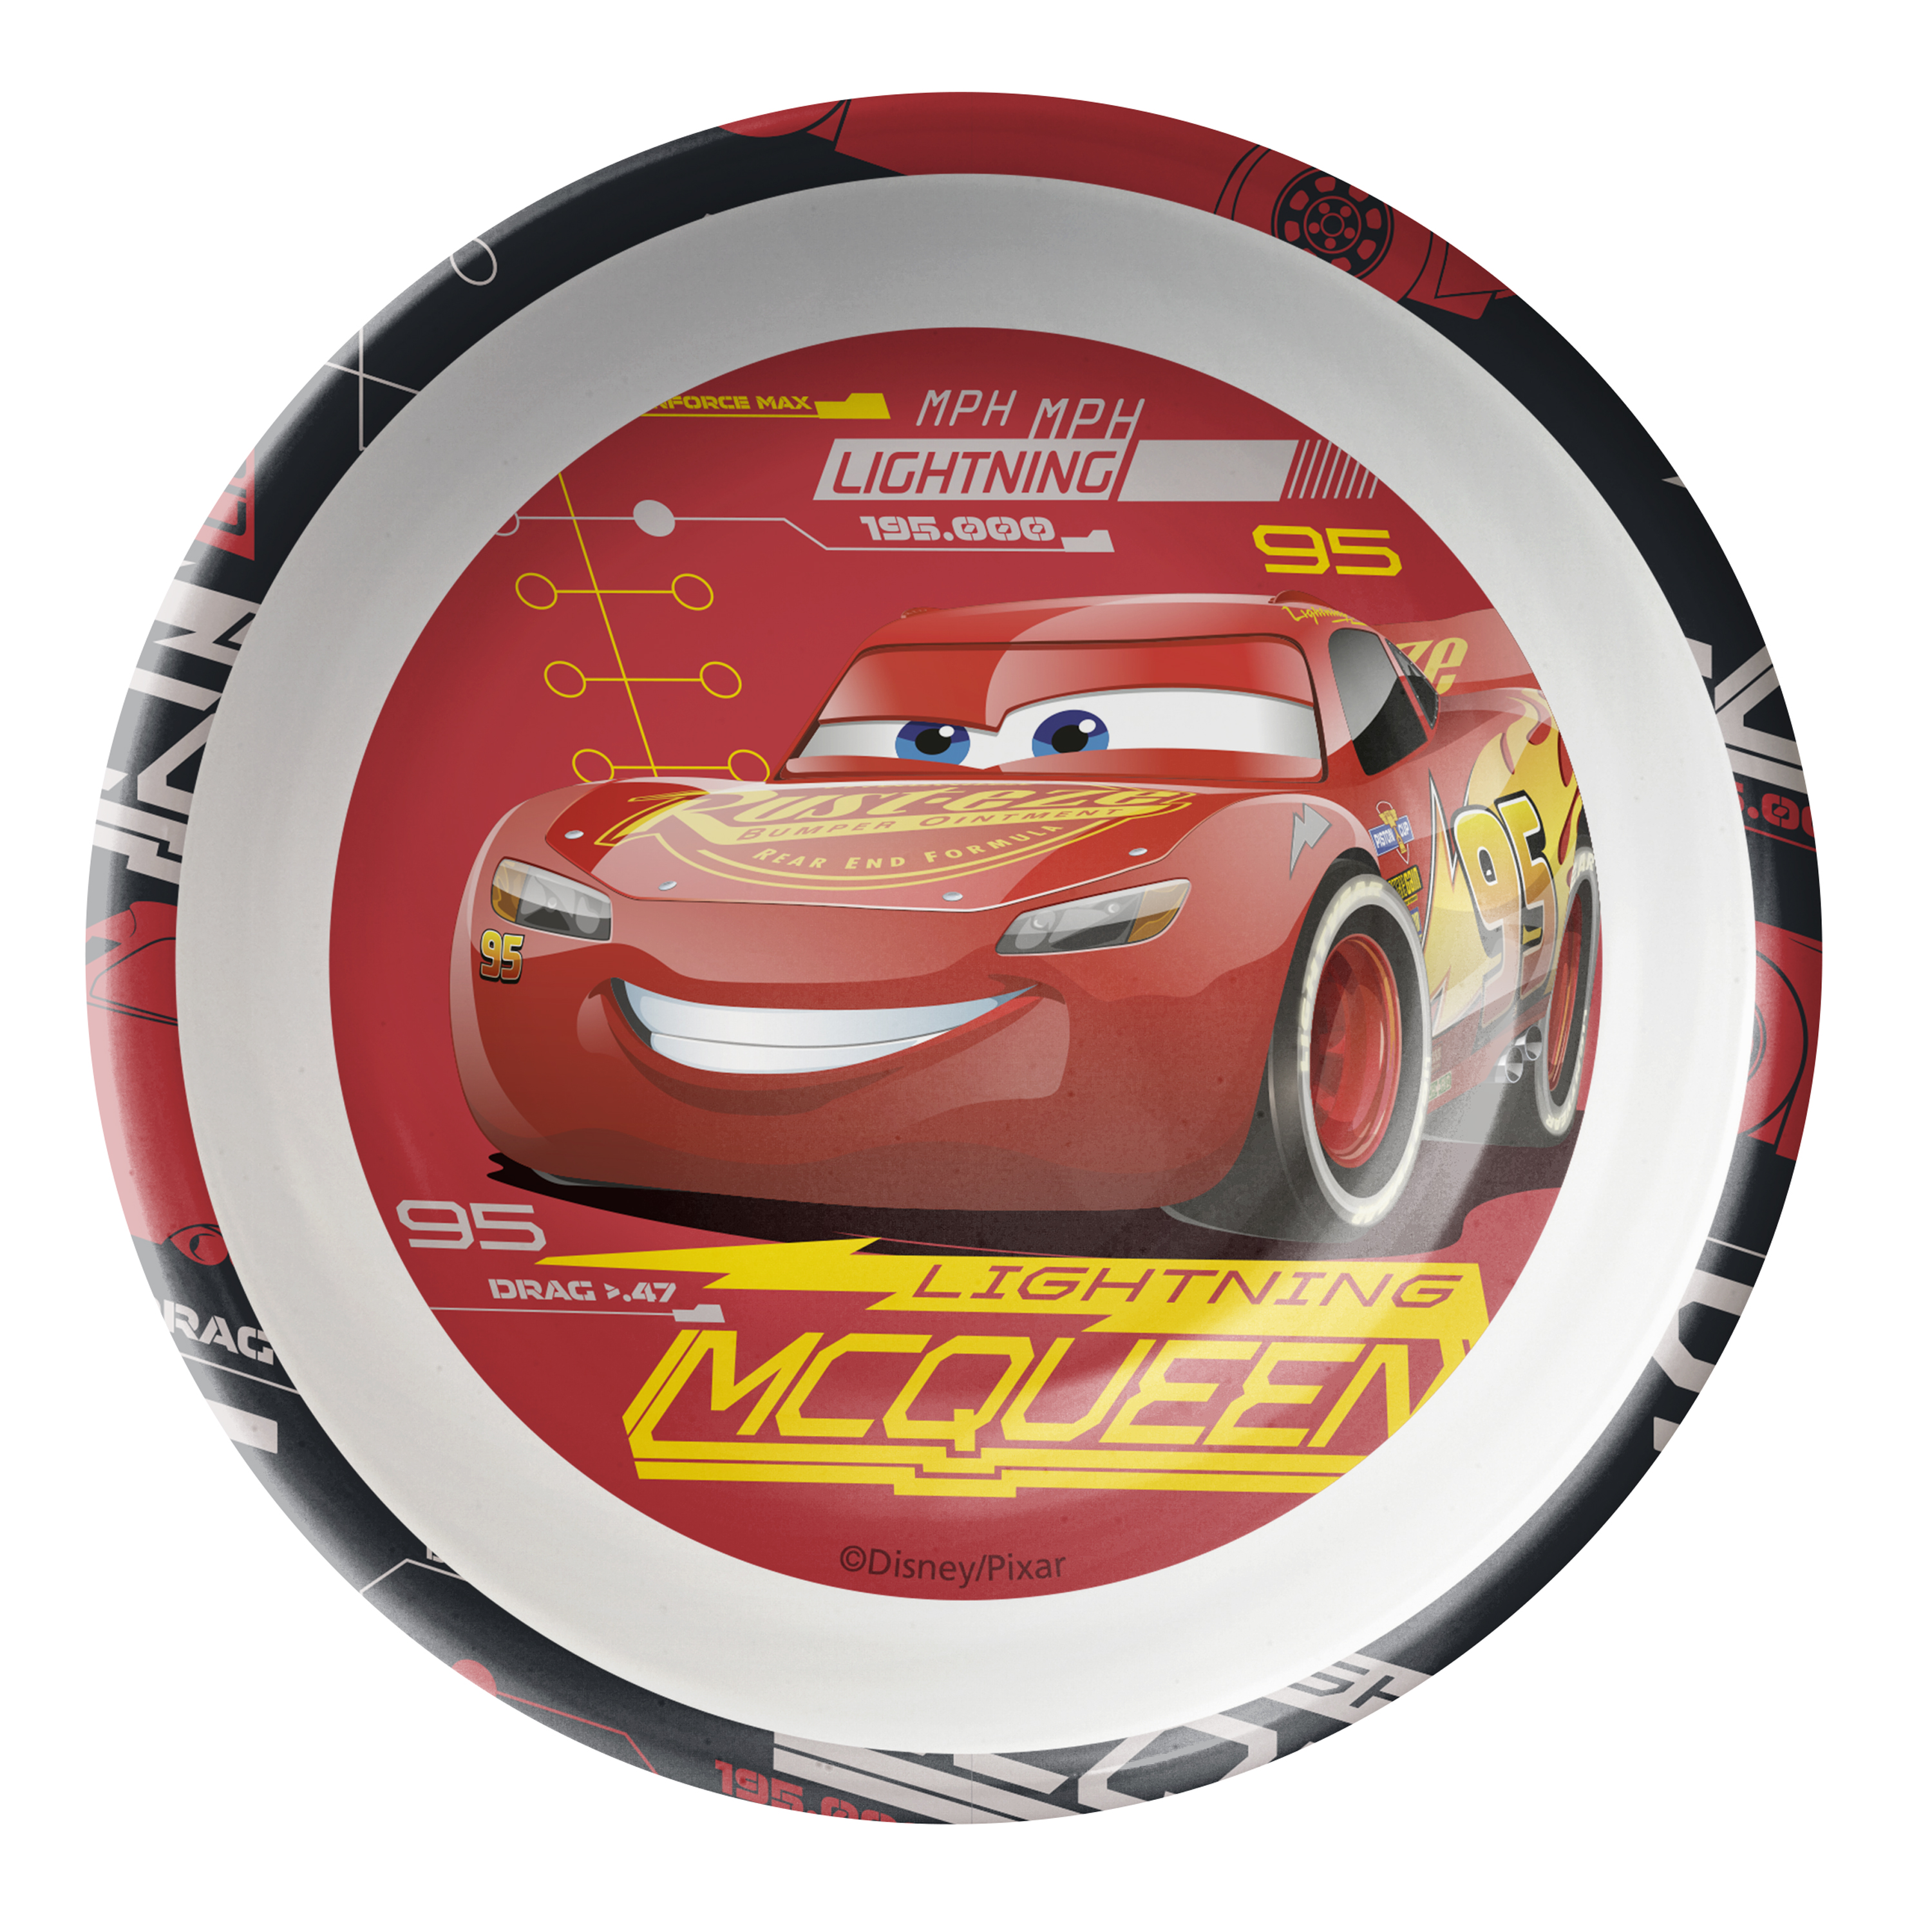 Cars 3 15 ounce Soup Bowl, Lightning McQueen slideshow image 1